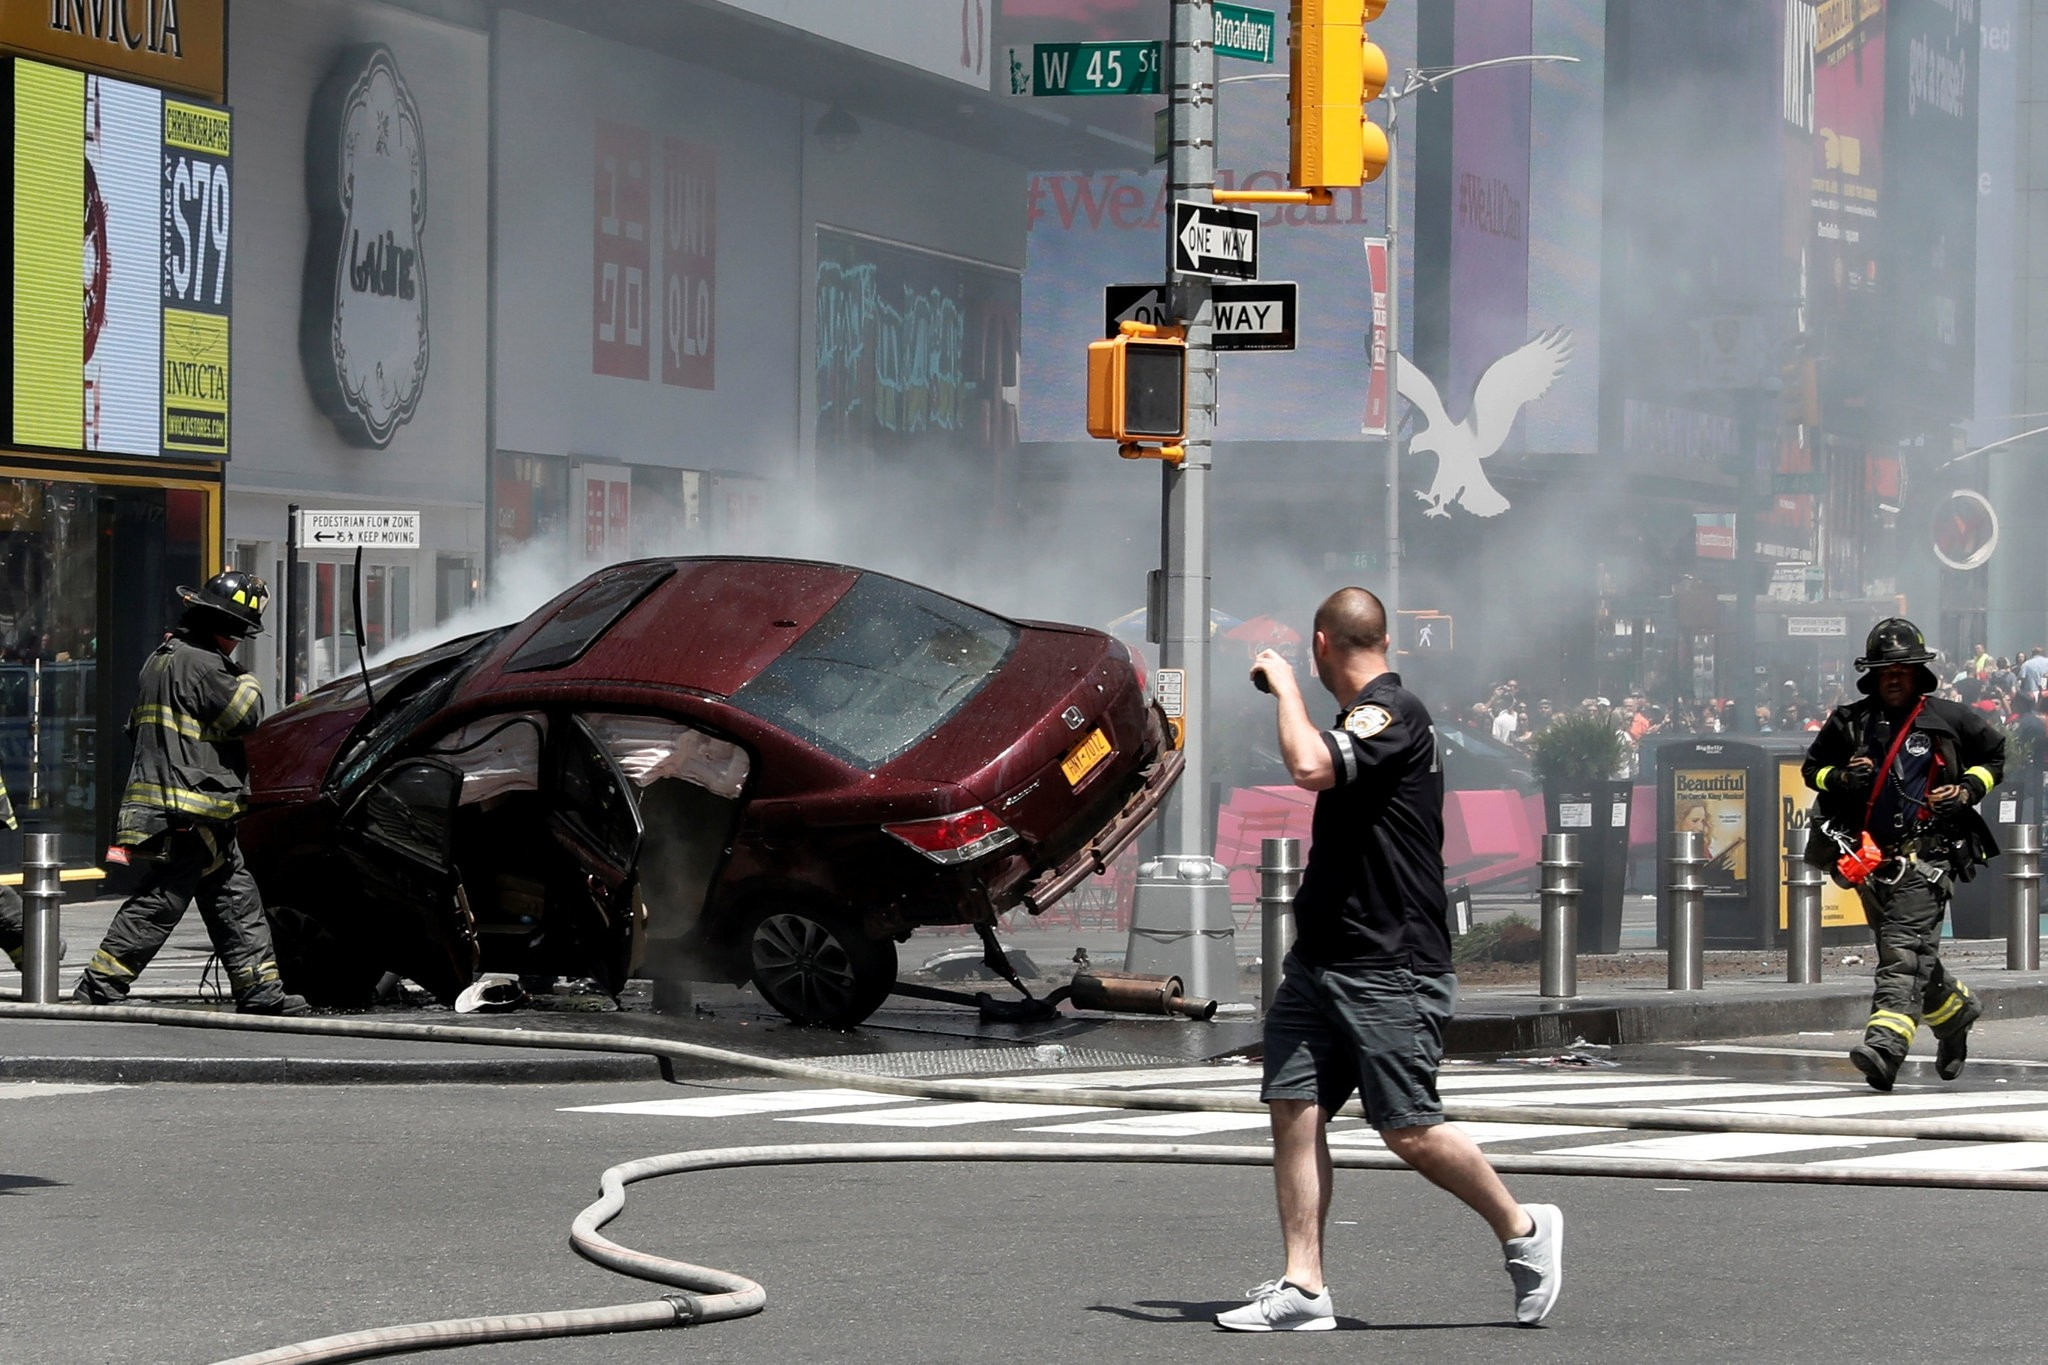 A vehicle that struck pedestrians and later crashed is seen on the sidewalk in Times Square in New York City, U.S., May 18, 2017. (REUTERS Photo)